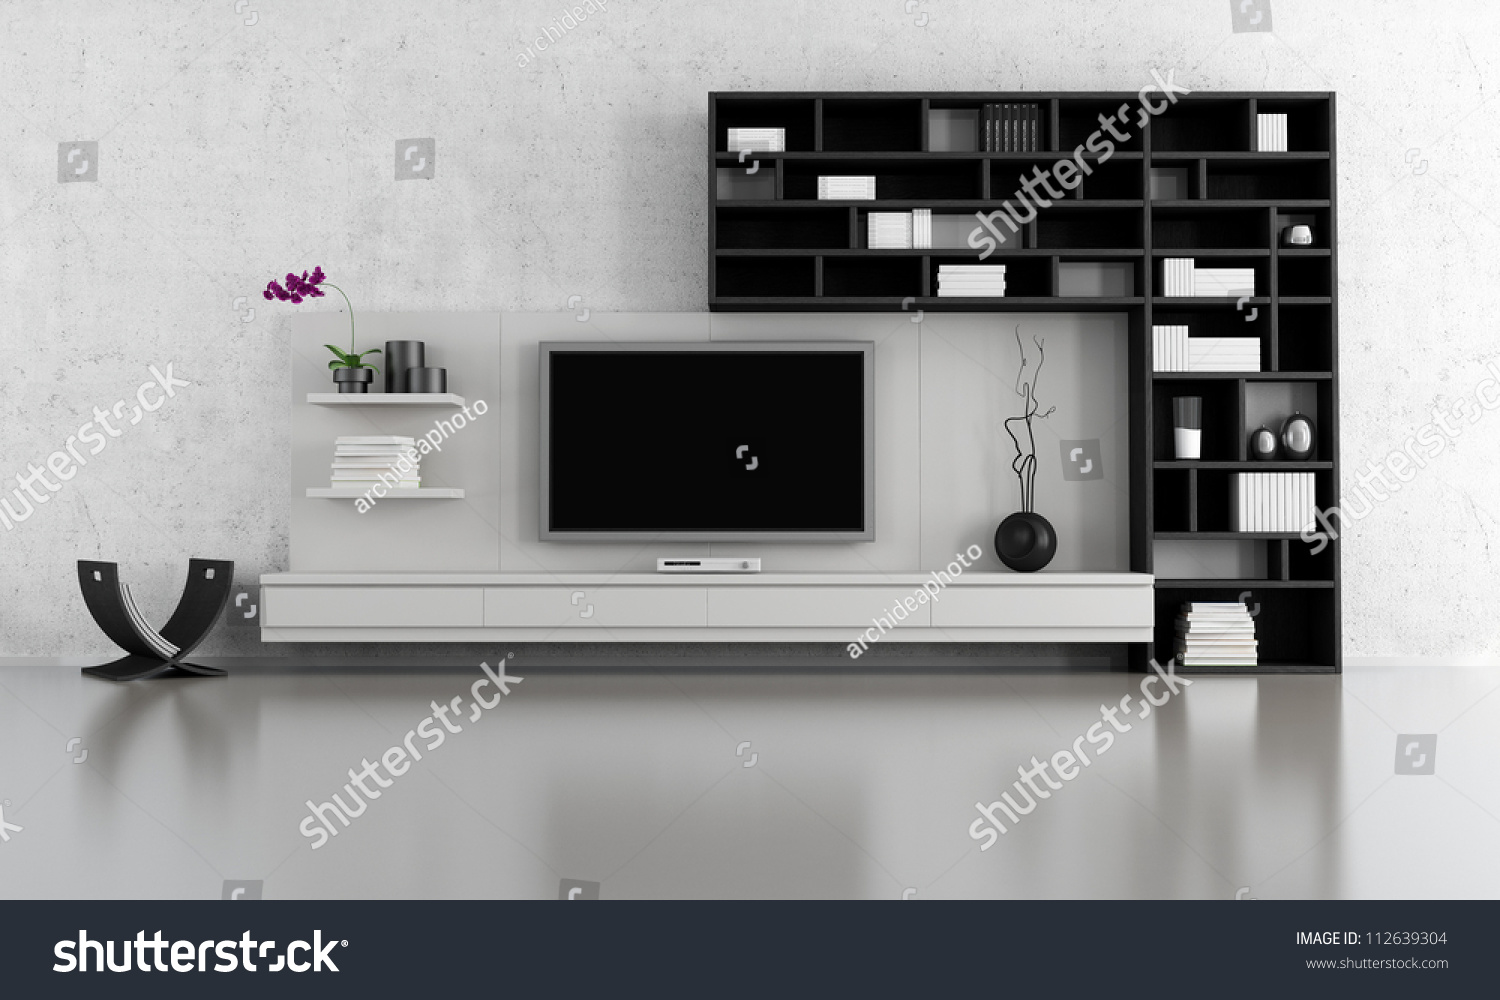 tv stands for living room black white living room tv stand stock illustration 20302